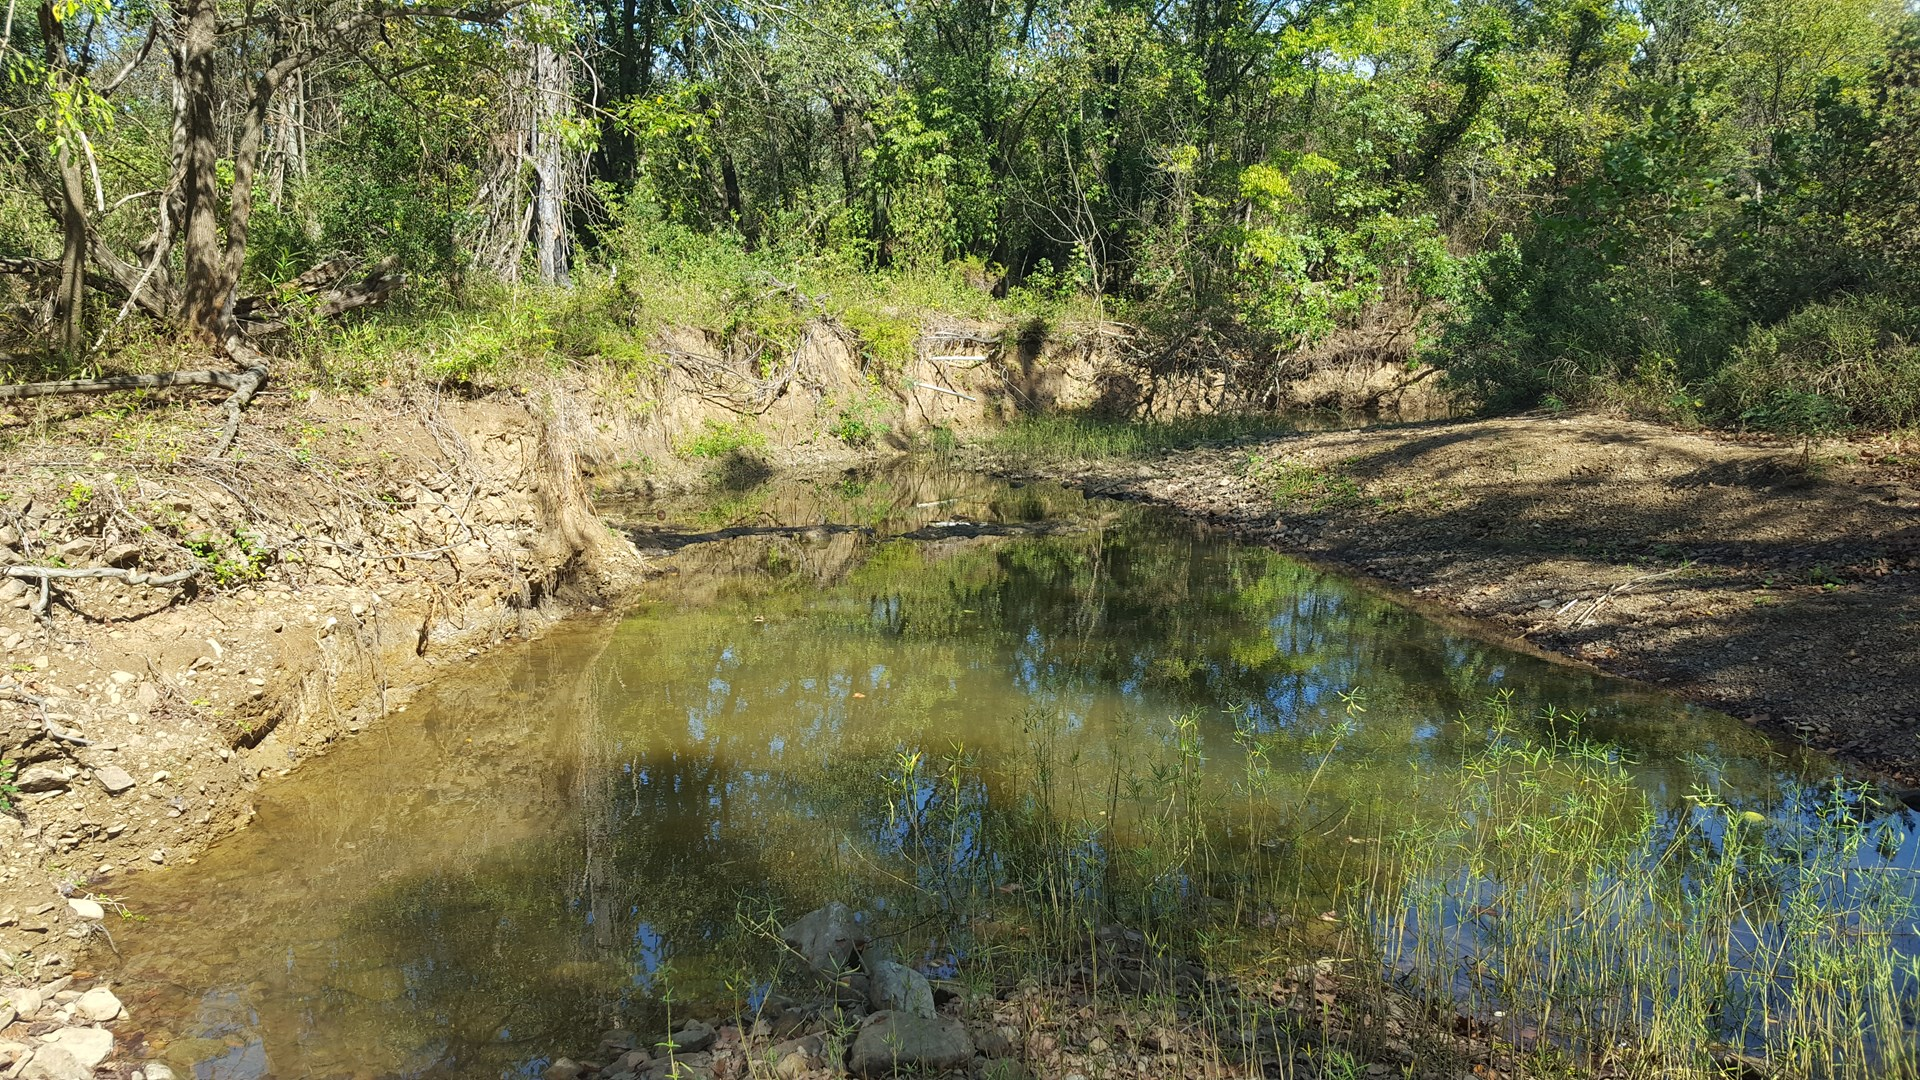 Highway 43 Frontage Land With Creek